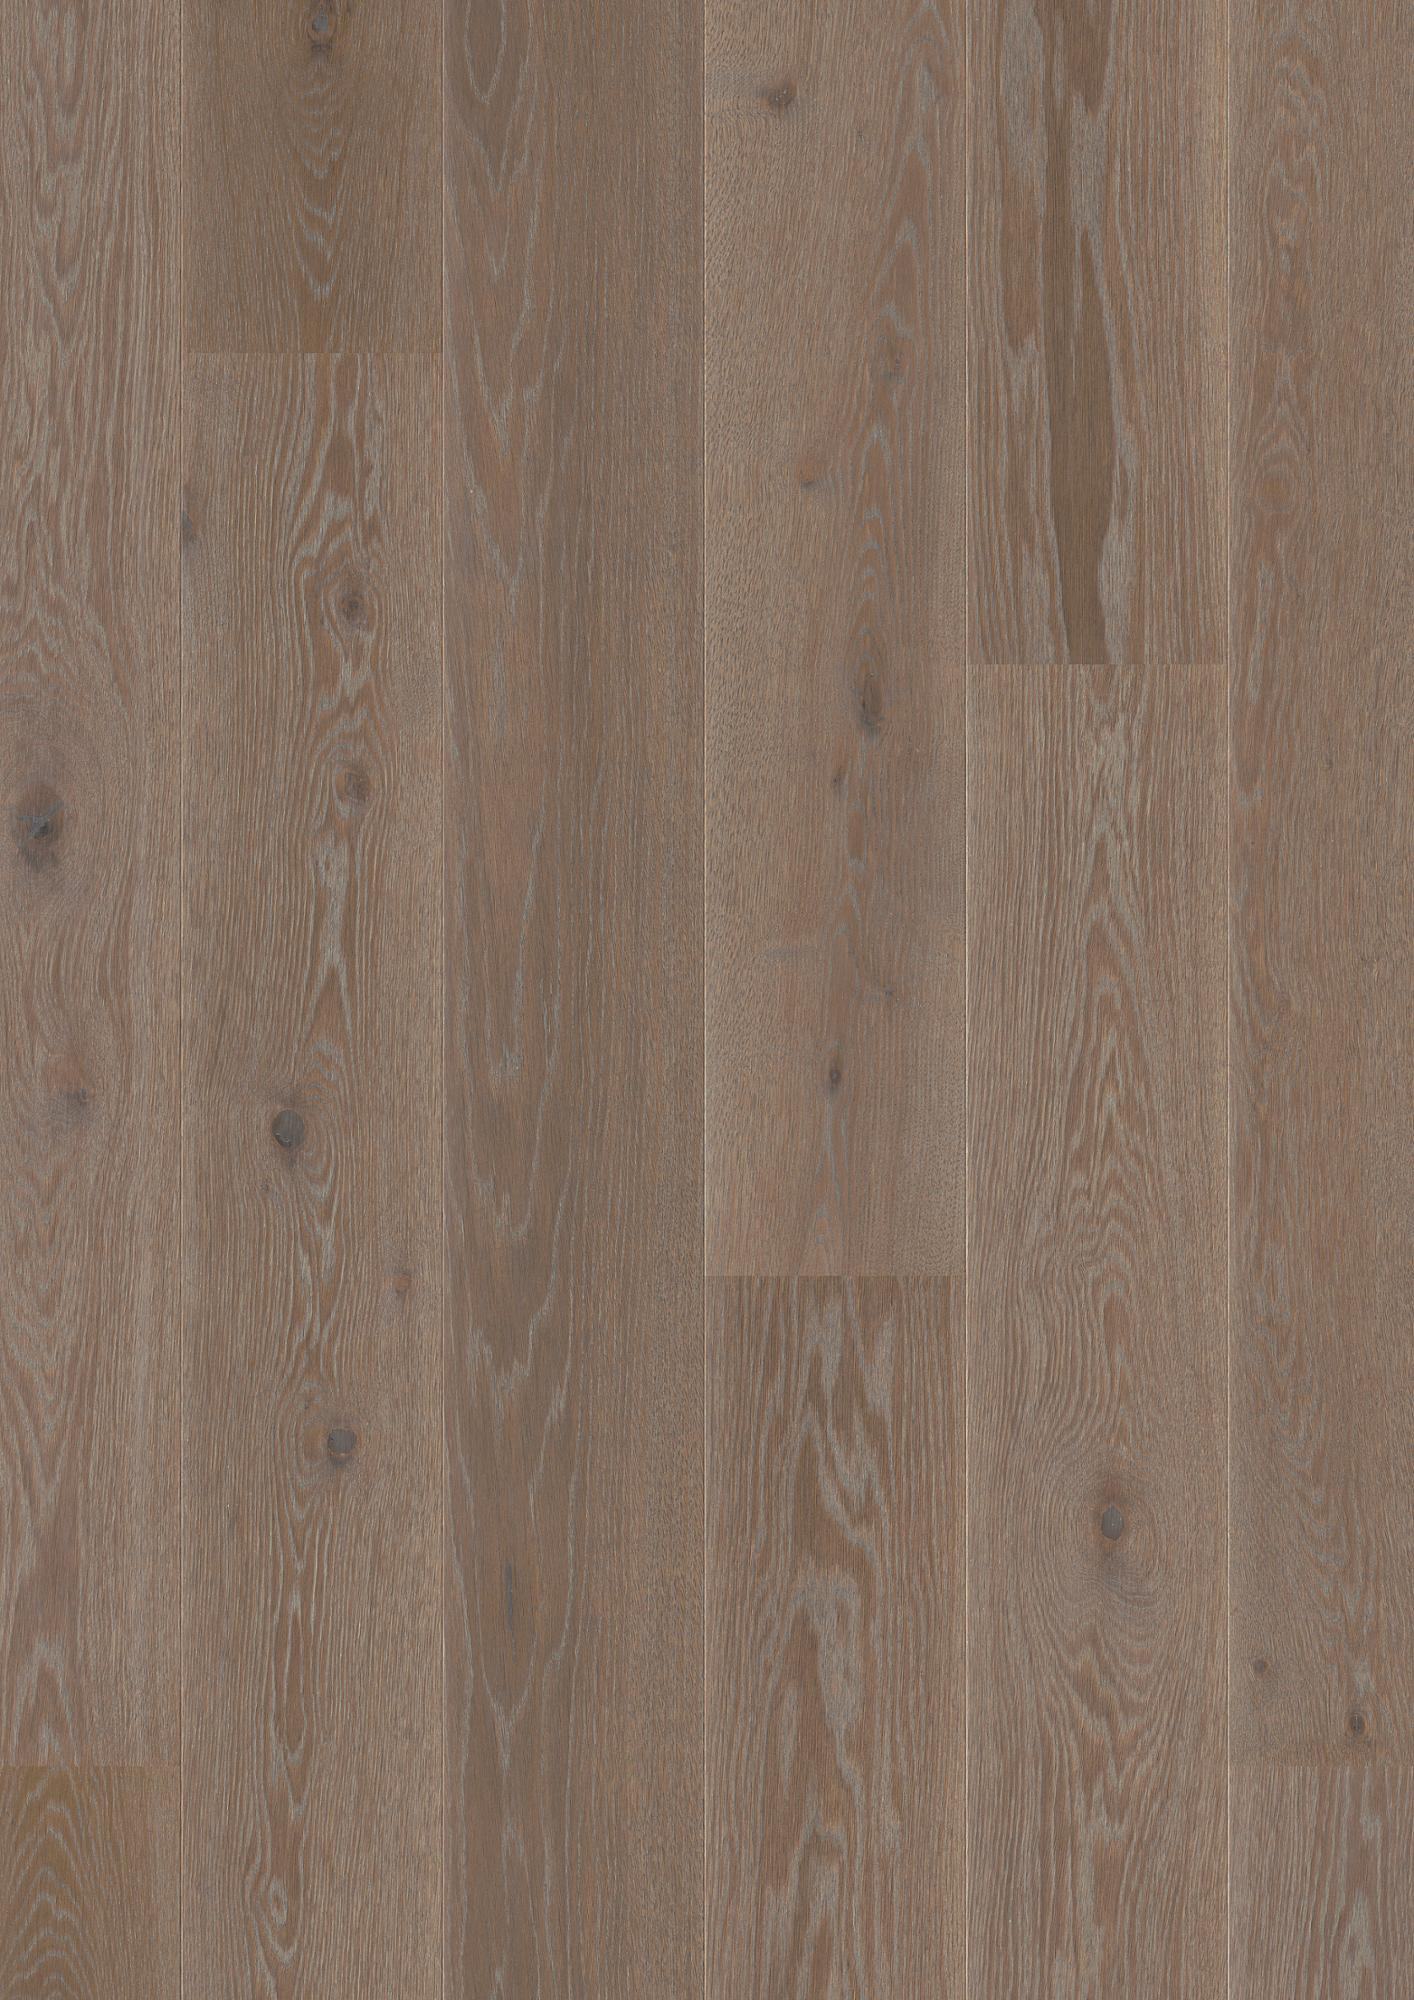 Oak India Grey, Live Pure lacquer, beveled 2V, brushed, Plank Castle, 14x209x2200mm